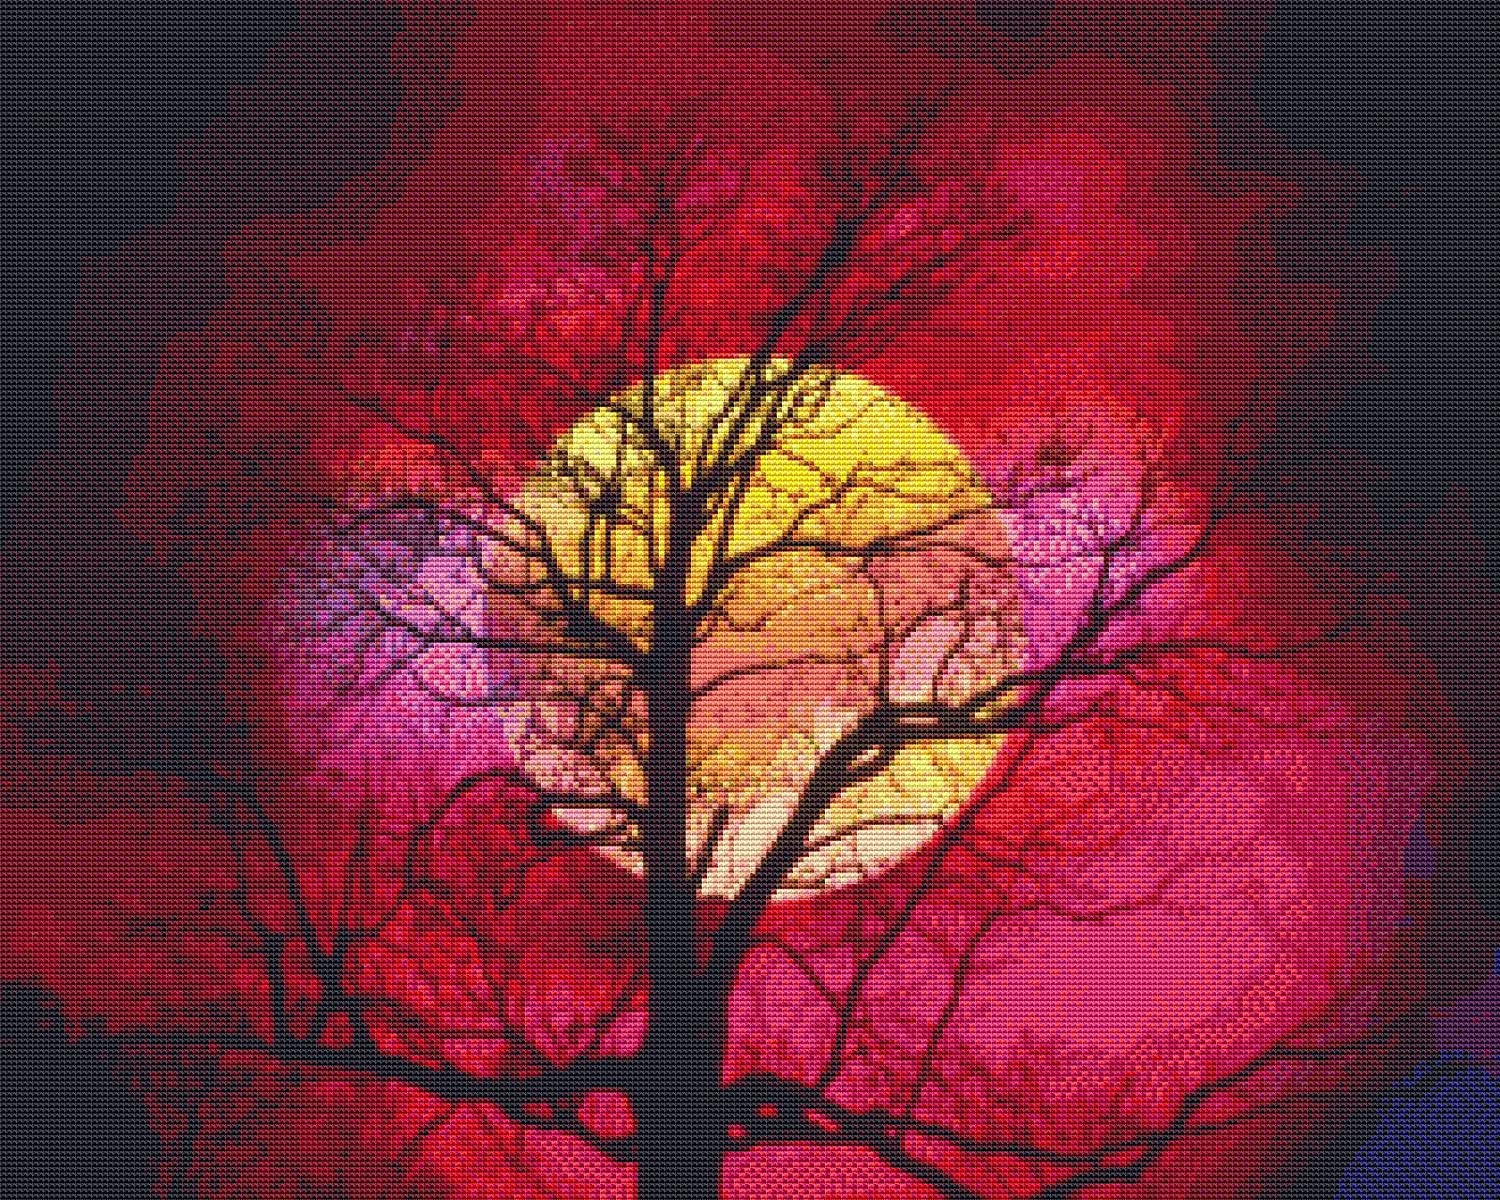 Natures Finest No. 30 Cross Stitch Pattern Beautiful Moon against Tree Silhouette Cross Stitch Pattern only (Not a kit)